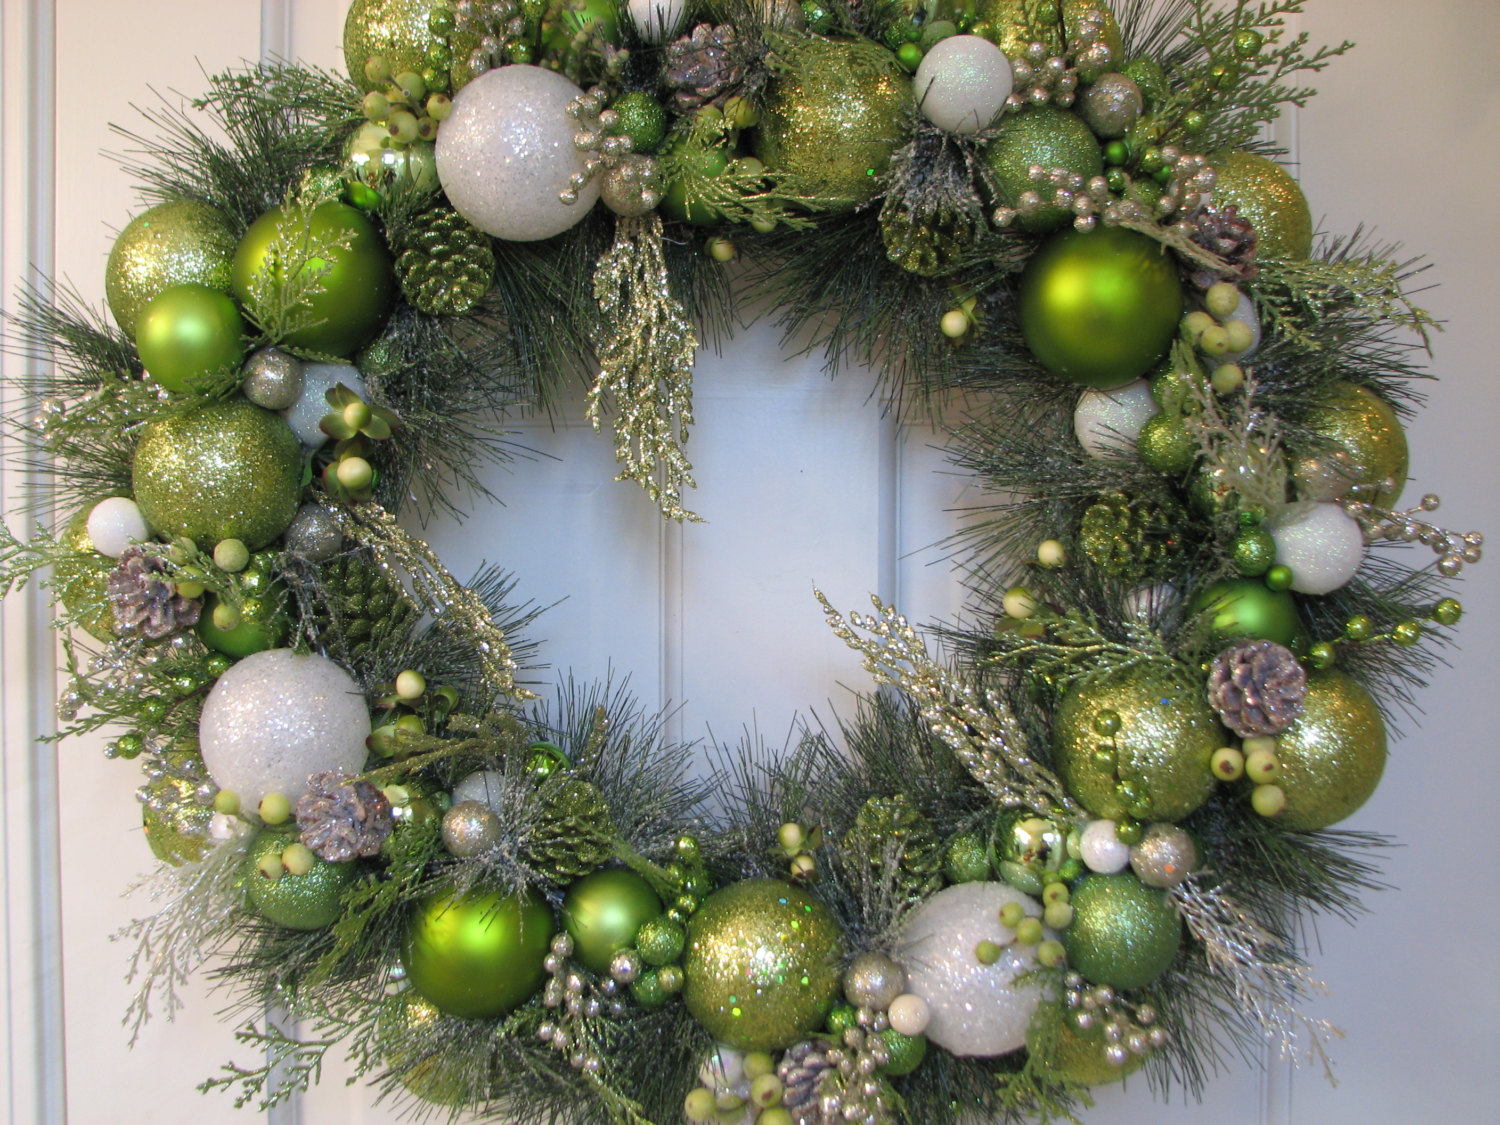 christmas wreath decorating ideas - Green Christmas Decorations